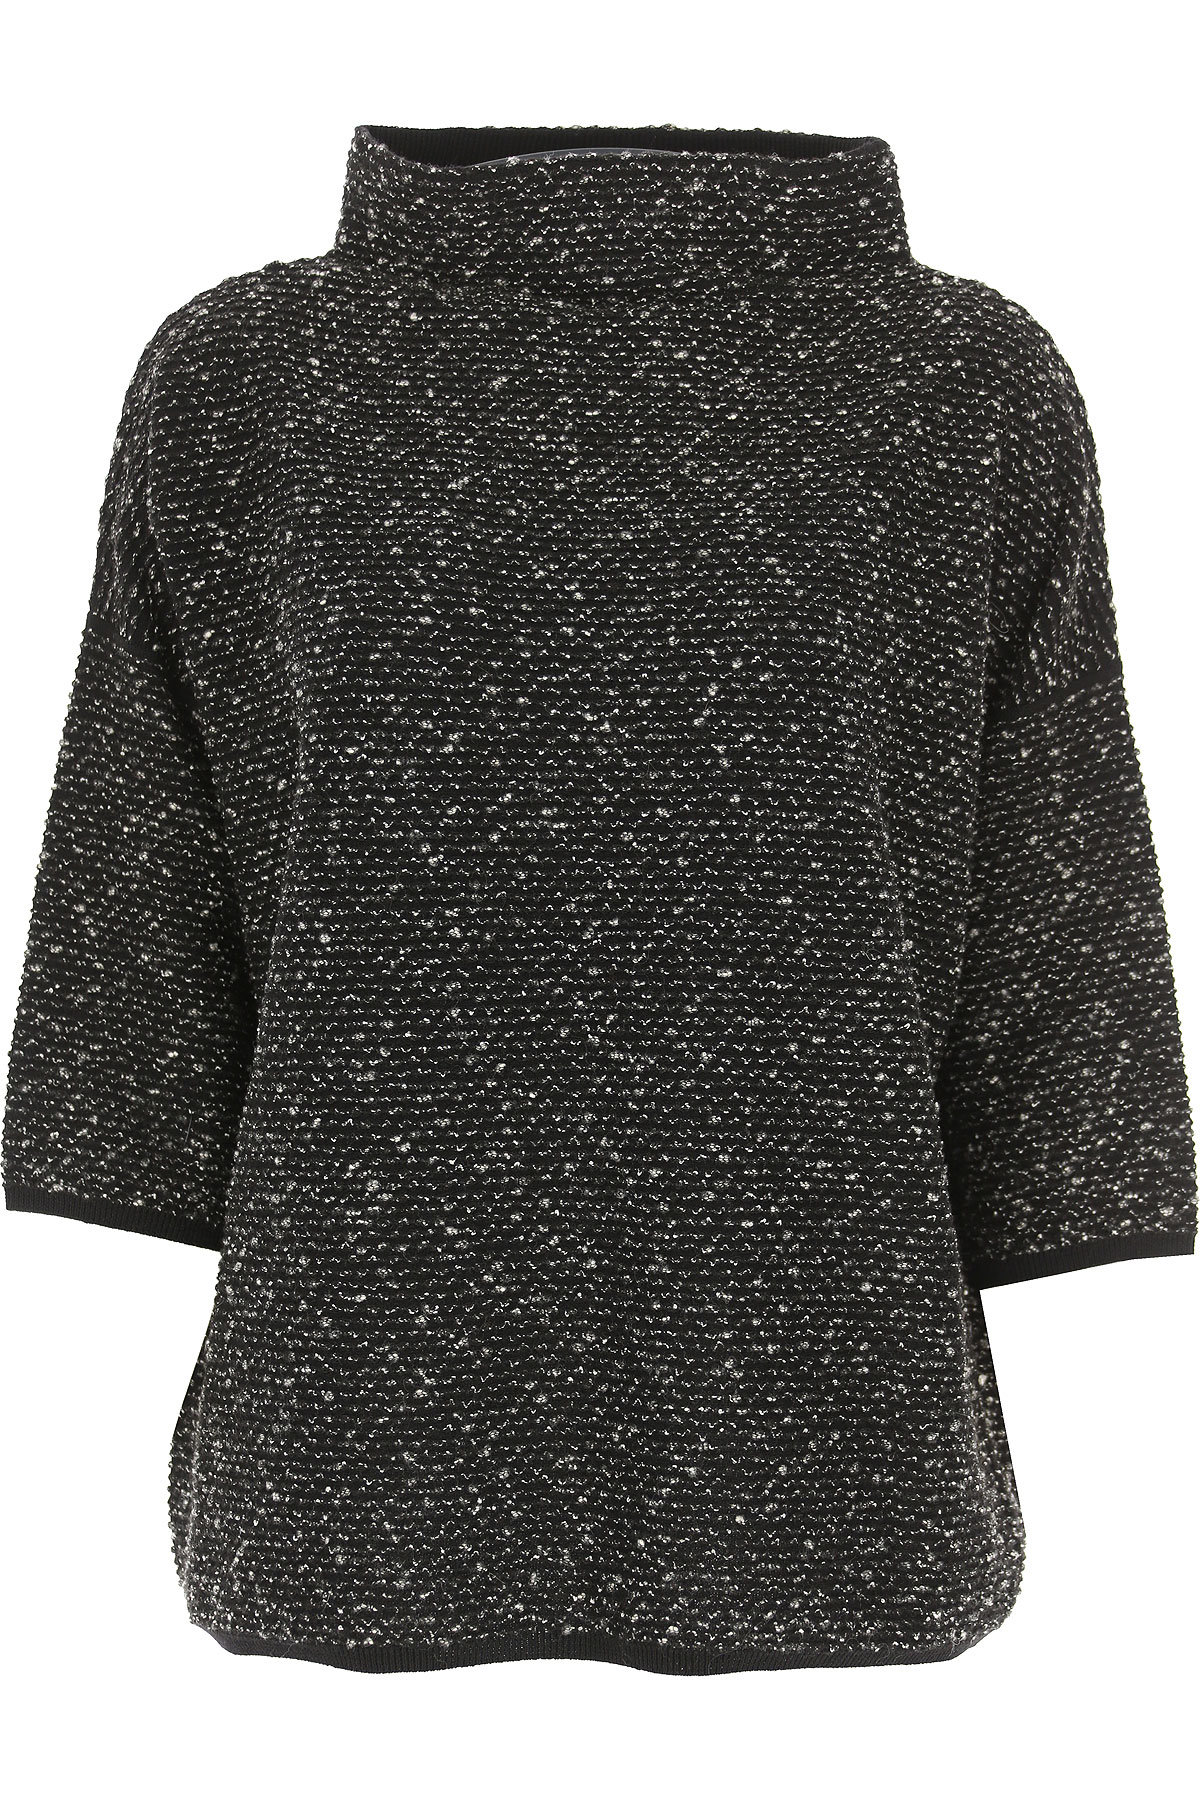 Image of Weekend by Max Mara Sweater for Women Jumper, Black, Wool, 2017, 4 6